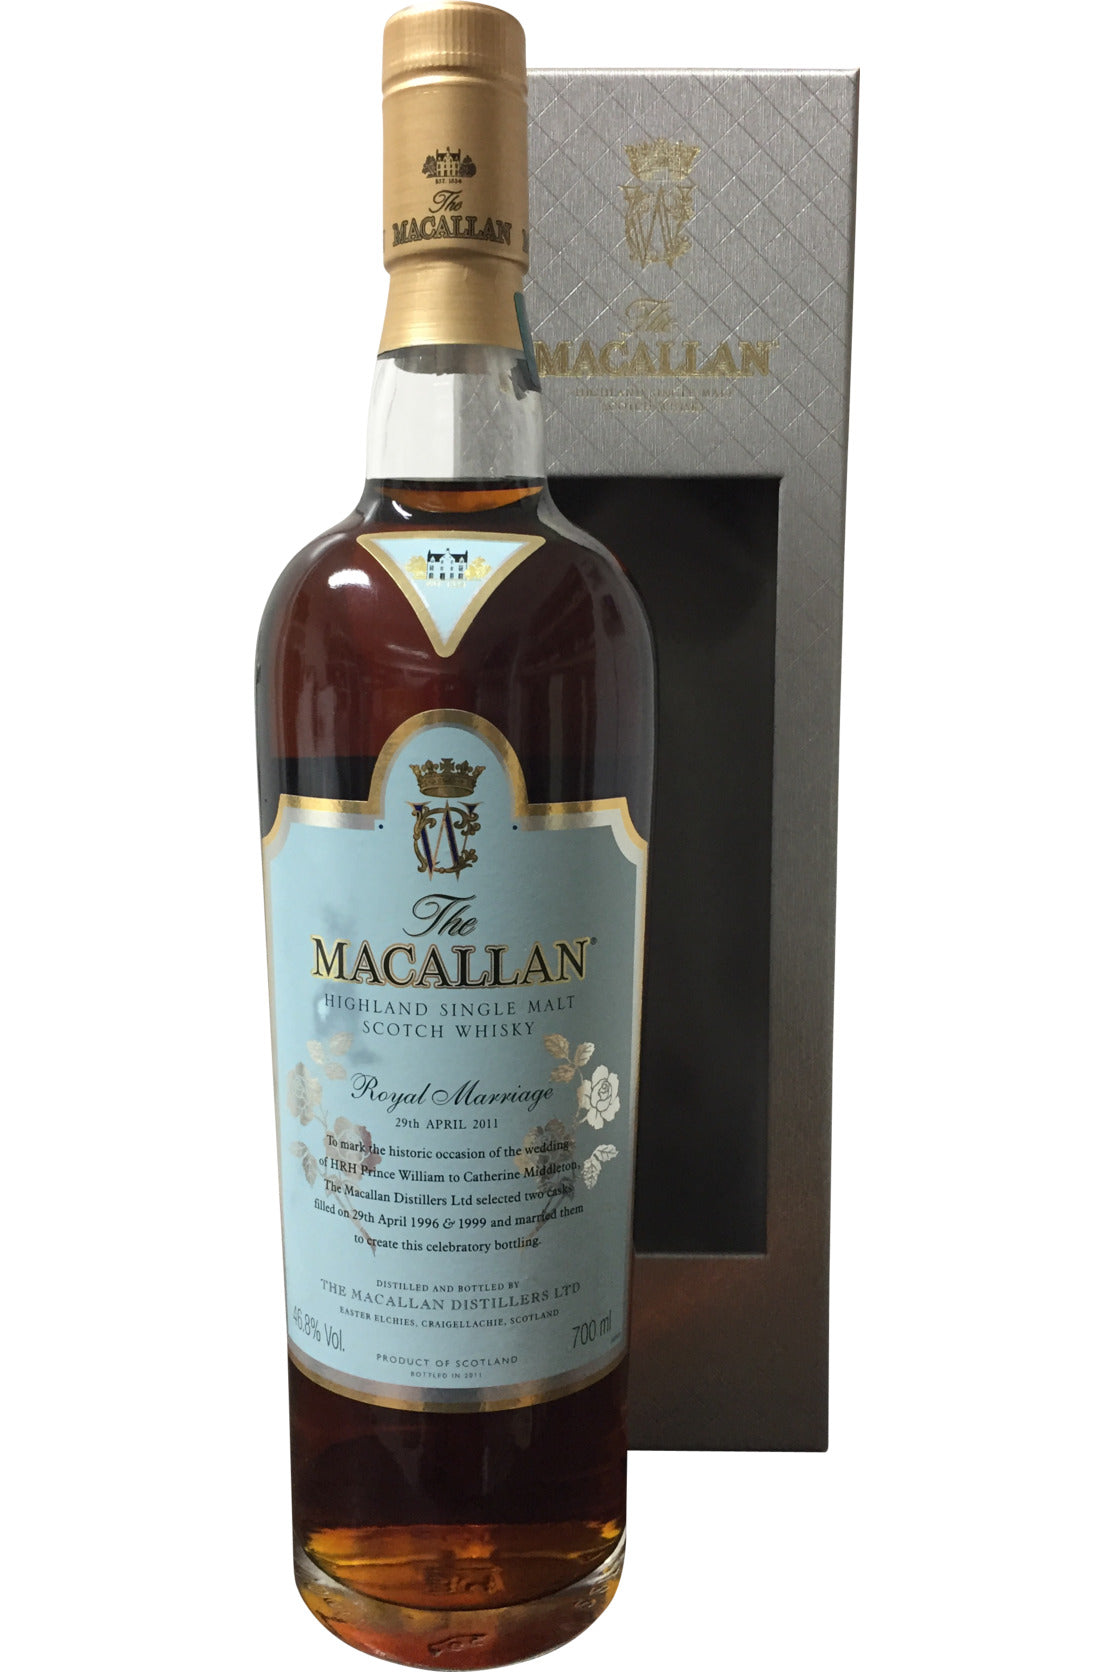 Macallan Royal Marriage 29th April 2011 Whisky - 46.8% 700ml